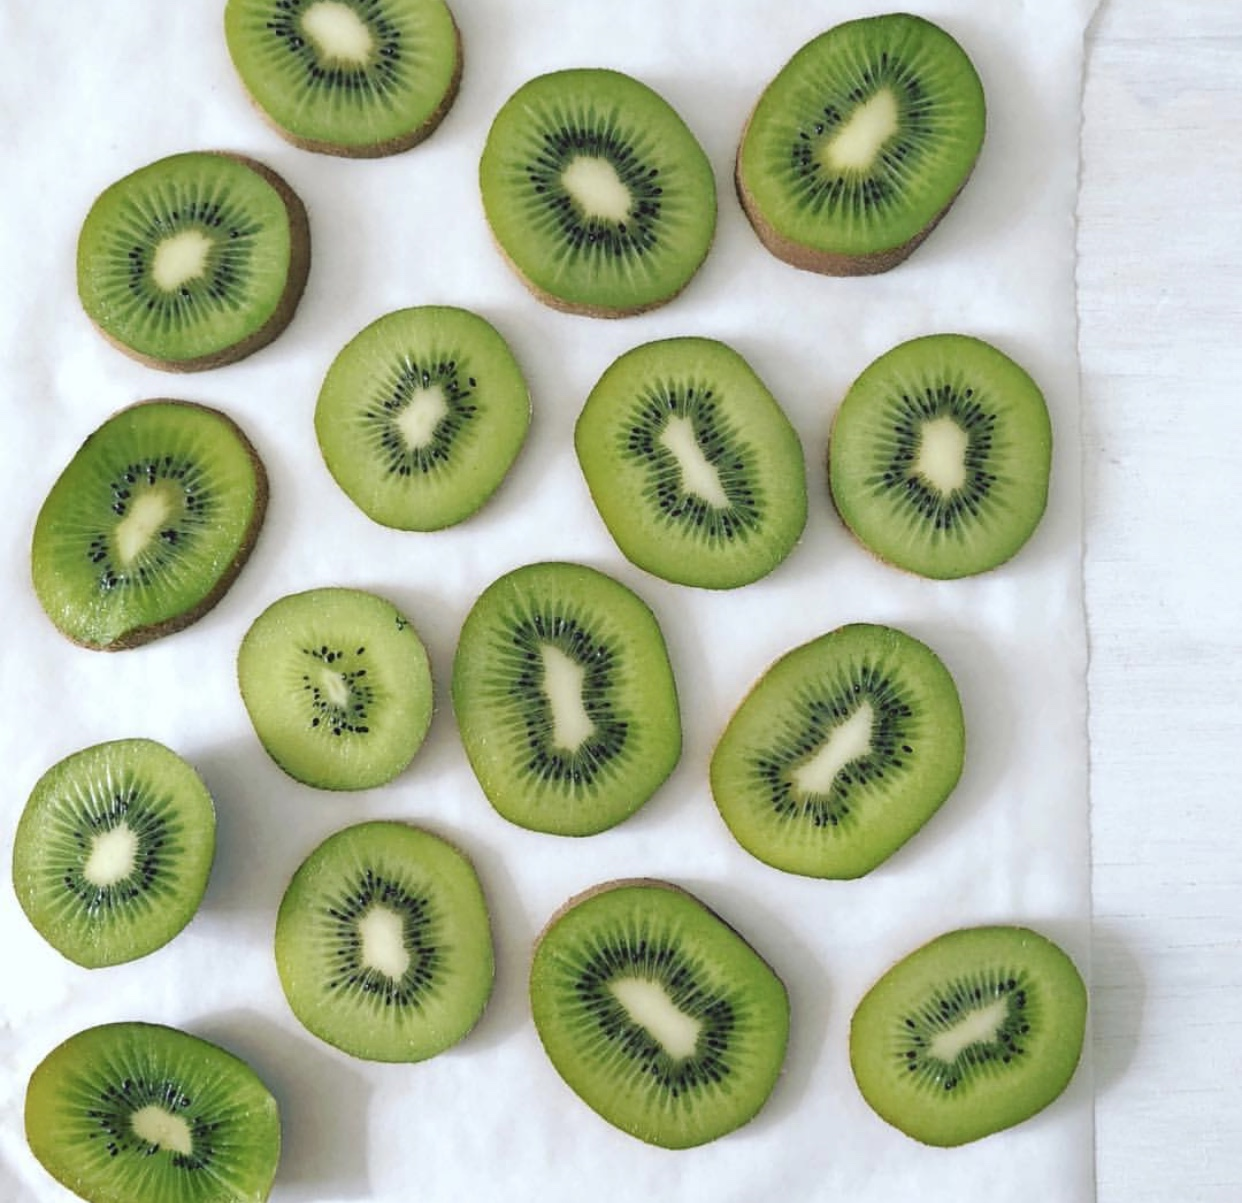 kiwifruit.jpeg